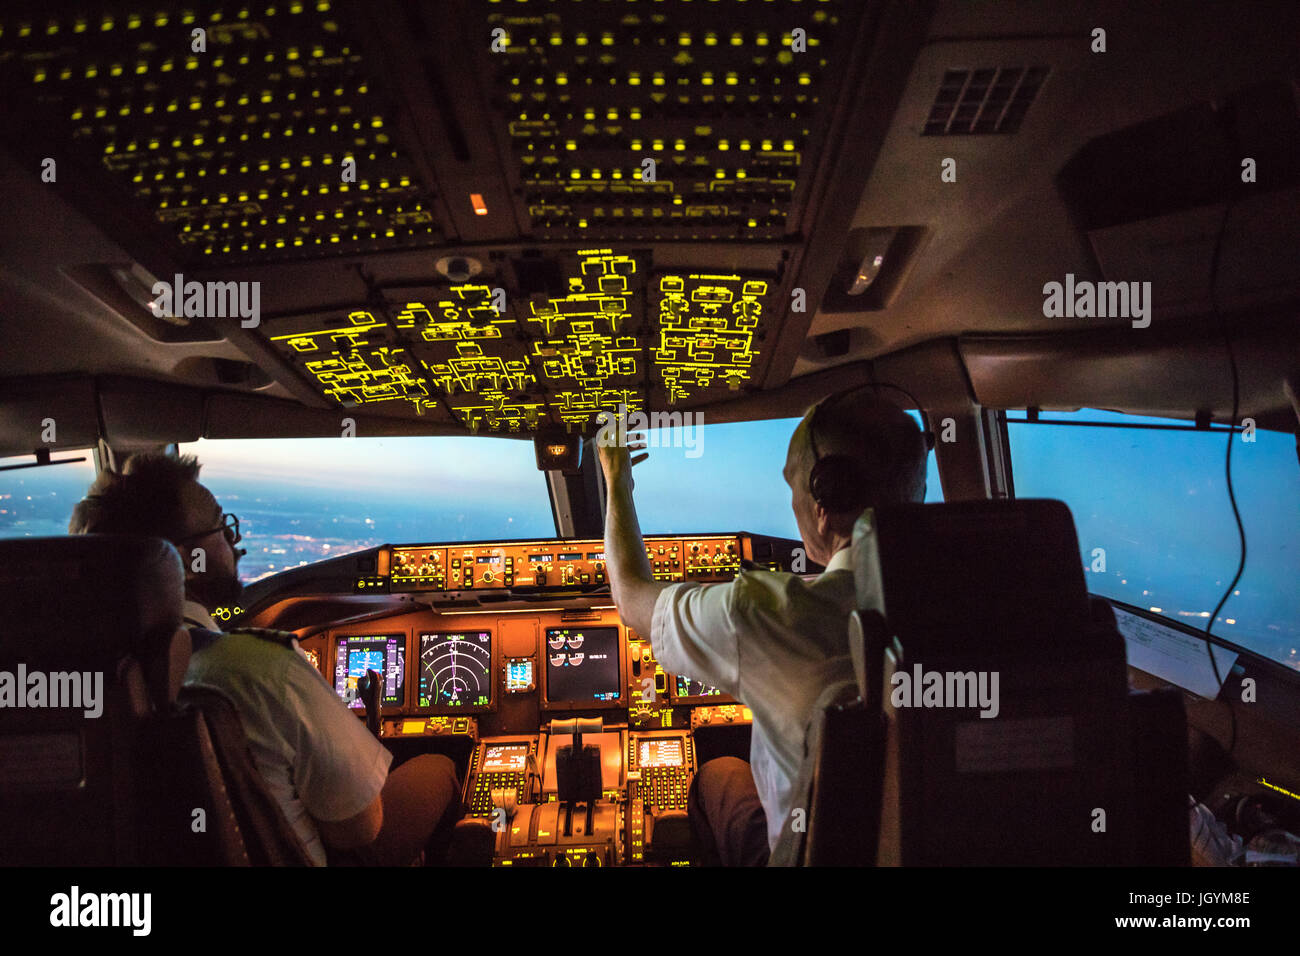 Two Pilots Departing out of Dallas Fort Worth Airport. Crew resource management taking place, both working together. - Stock Image